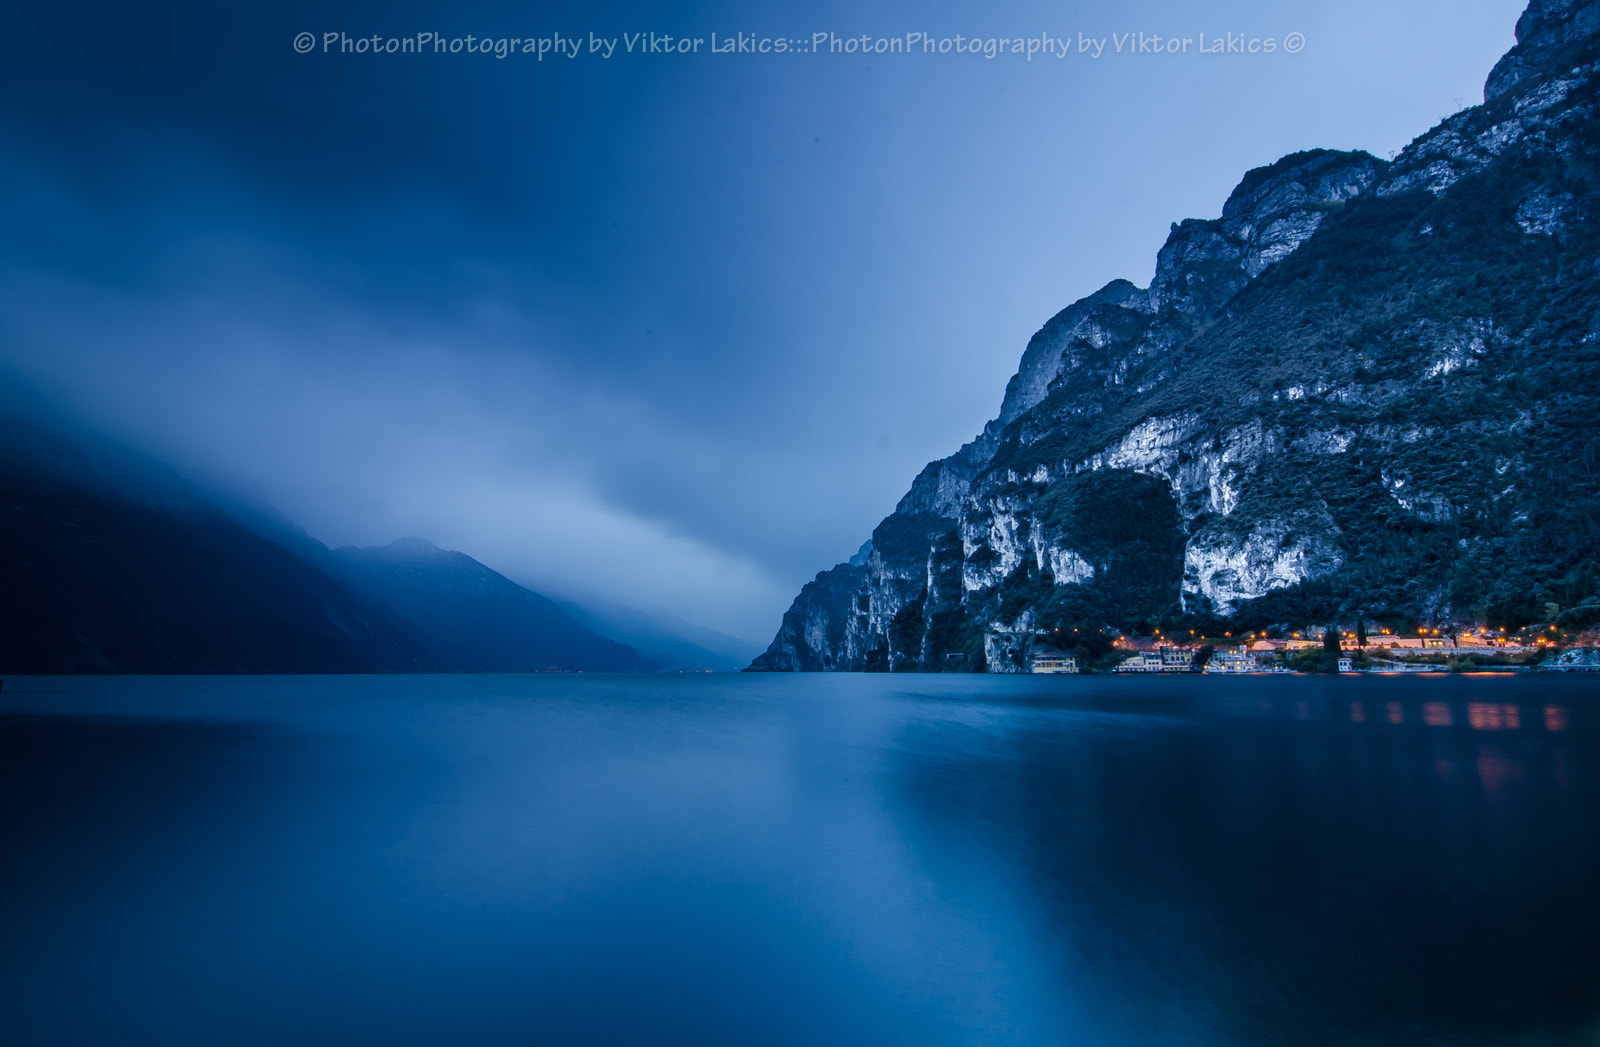 Photograph Blue Hour At Lake Garda by PhotonPhotography -Viktor Lakics on 500px